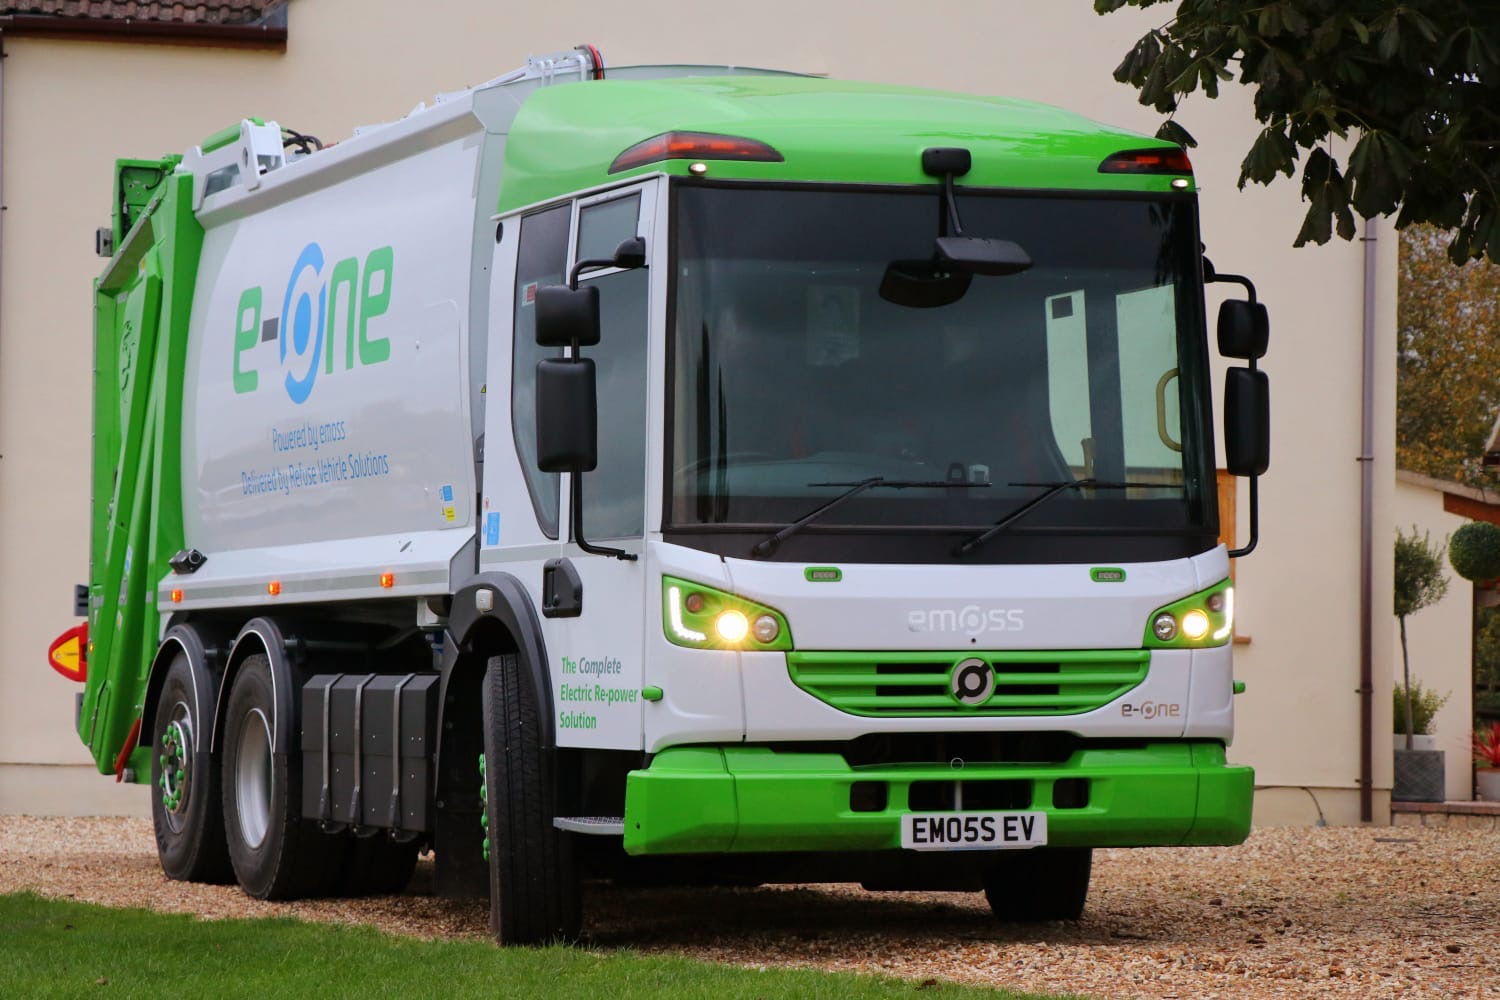 RVS ranked highest for electric refuse vehicle conversion on new HGV framework